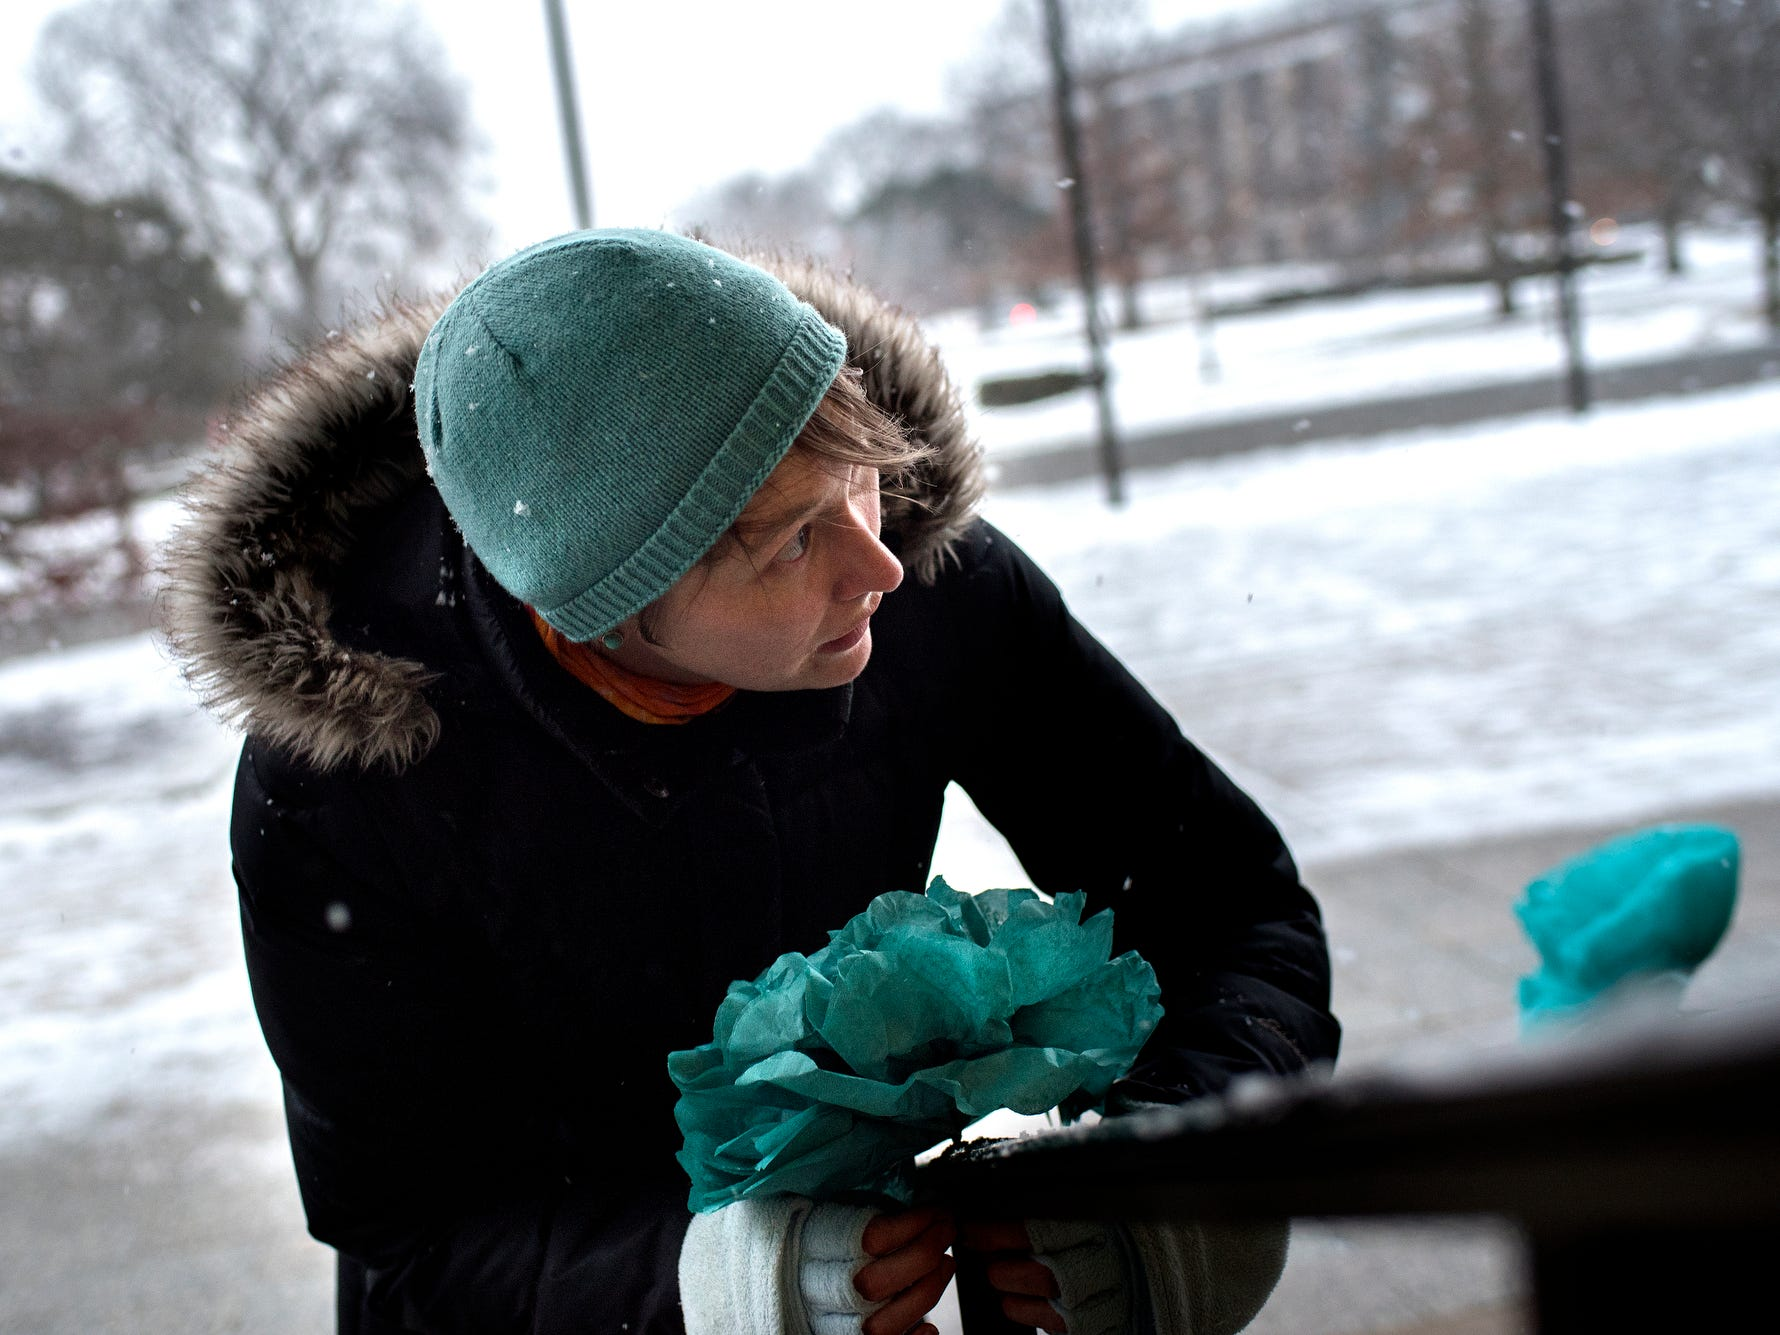 "Grad student and ReclaimMSU member Betsy Riley places teal paper flowers on the step rails before the ""One Year On: Celebrating Courage and Creating Change"" event on Thursday, Jan. 24, 2019, outside the Hannah Administration Building on the Michigan State University campus in East Lansing. The event was organized by Reclaim MSU and held on the one-year anniversary of Larry Nassar's sentencing."